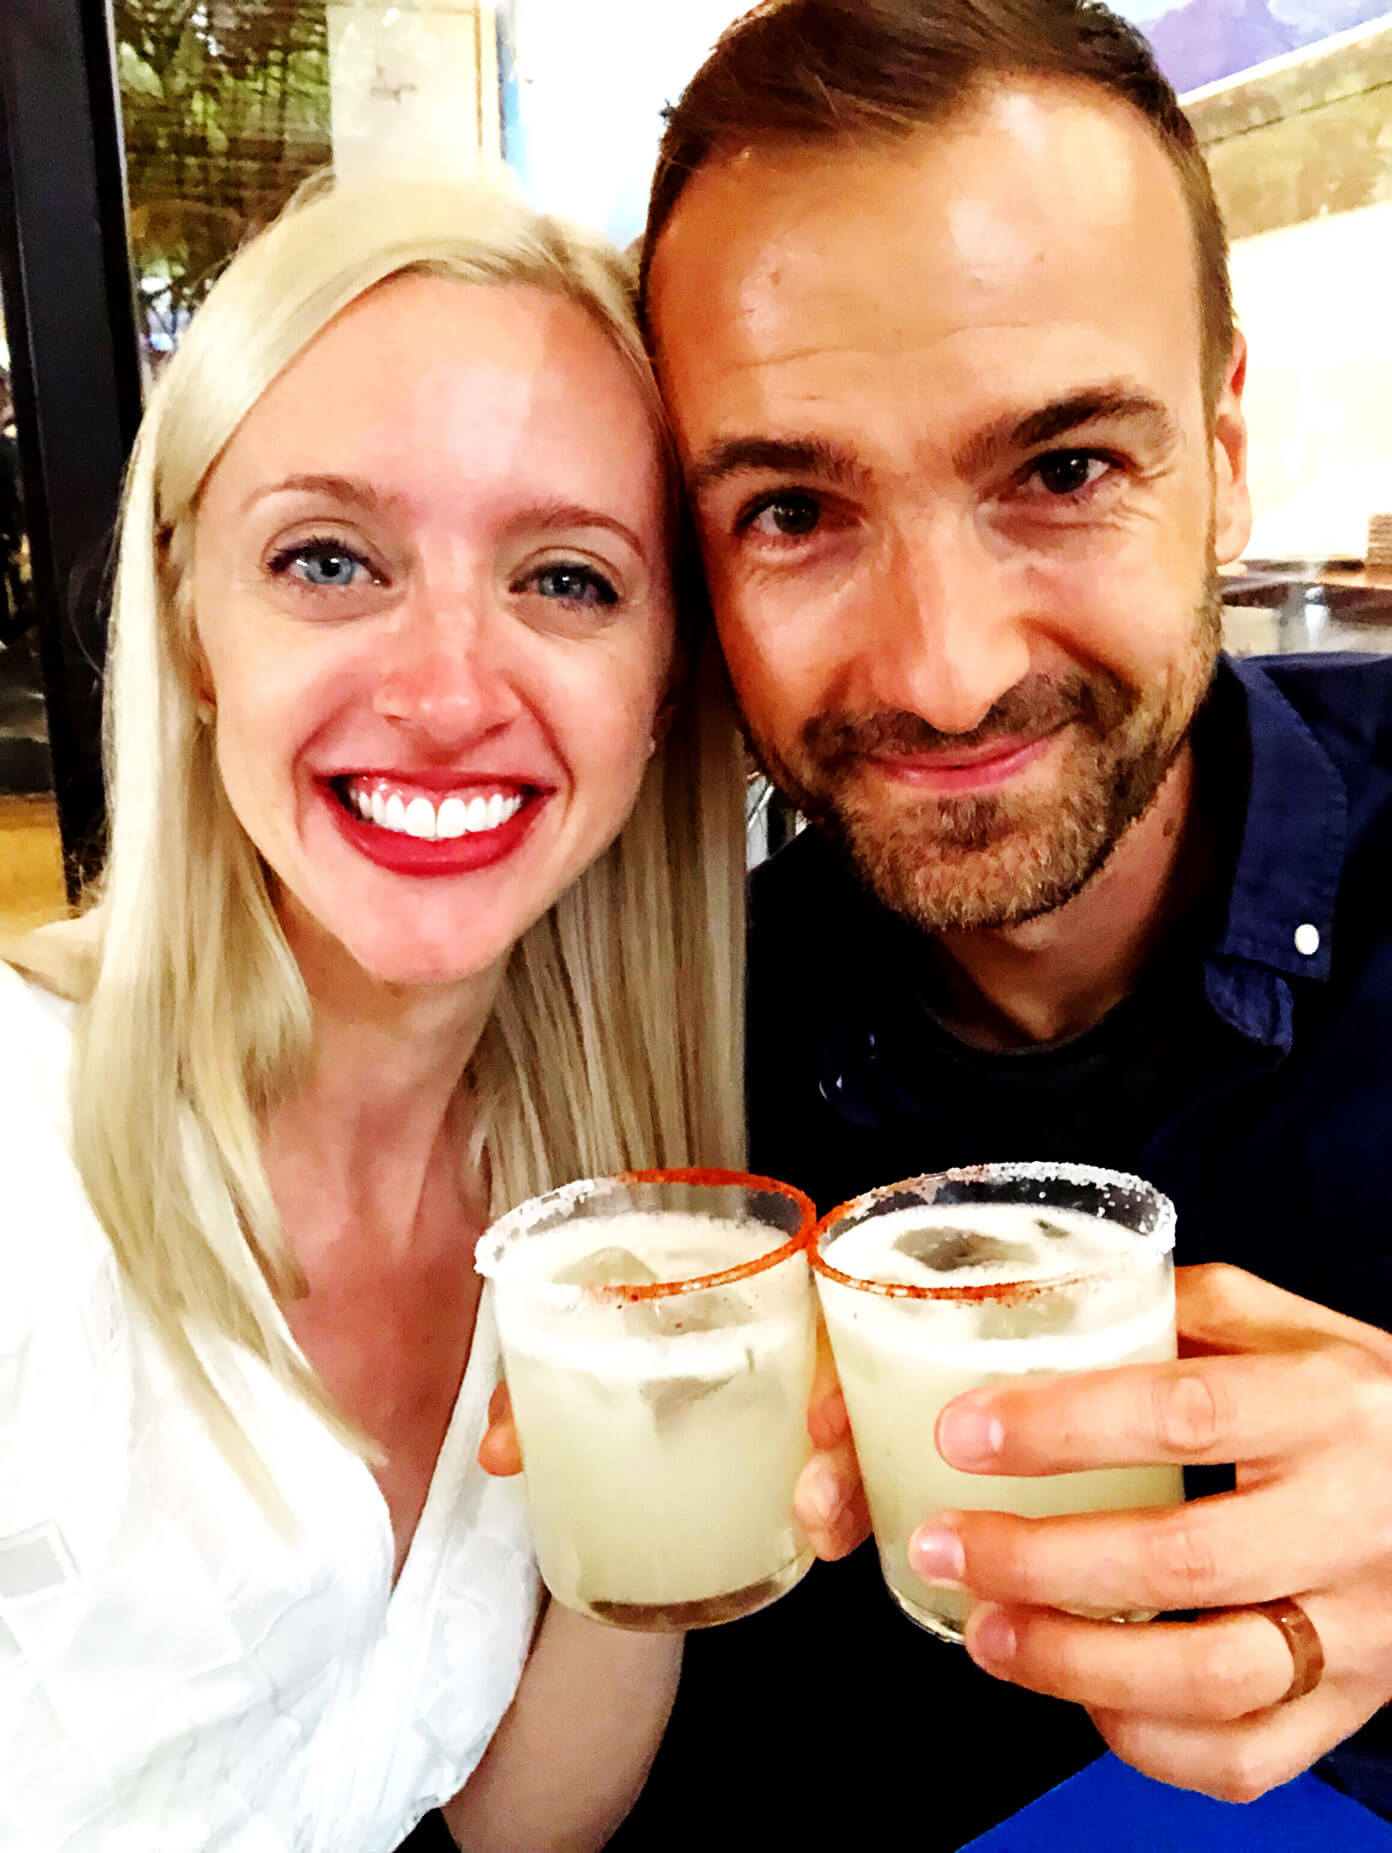 Mezcal Margaritas with Barclay and Ali Martin | Ali's Guide To Mexico City